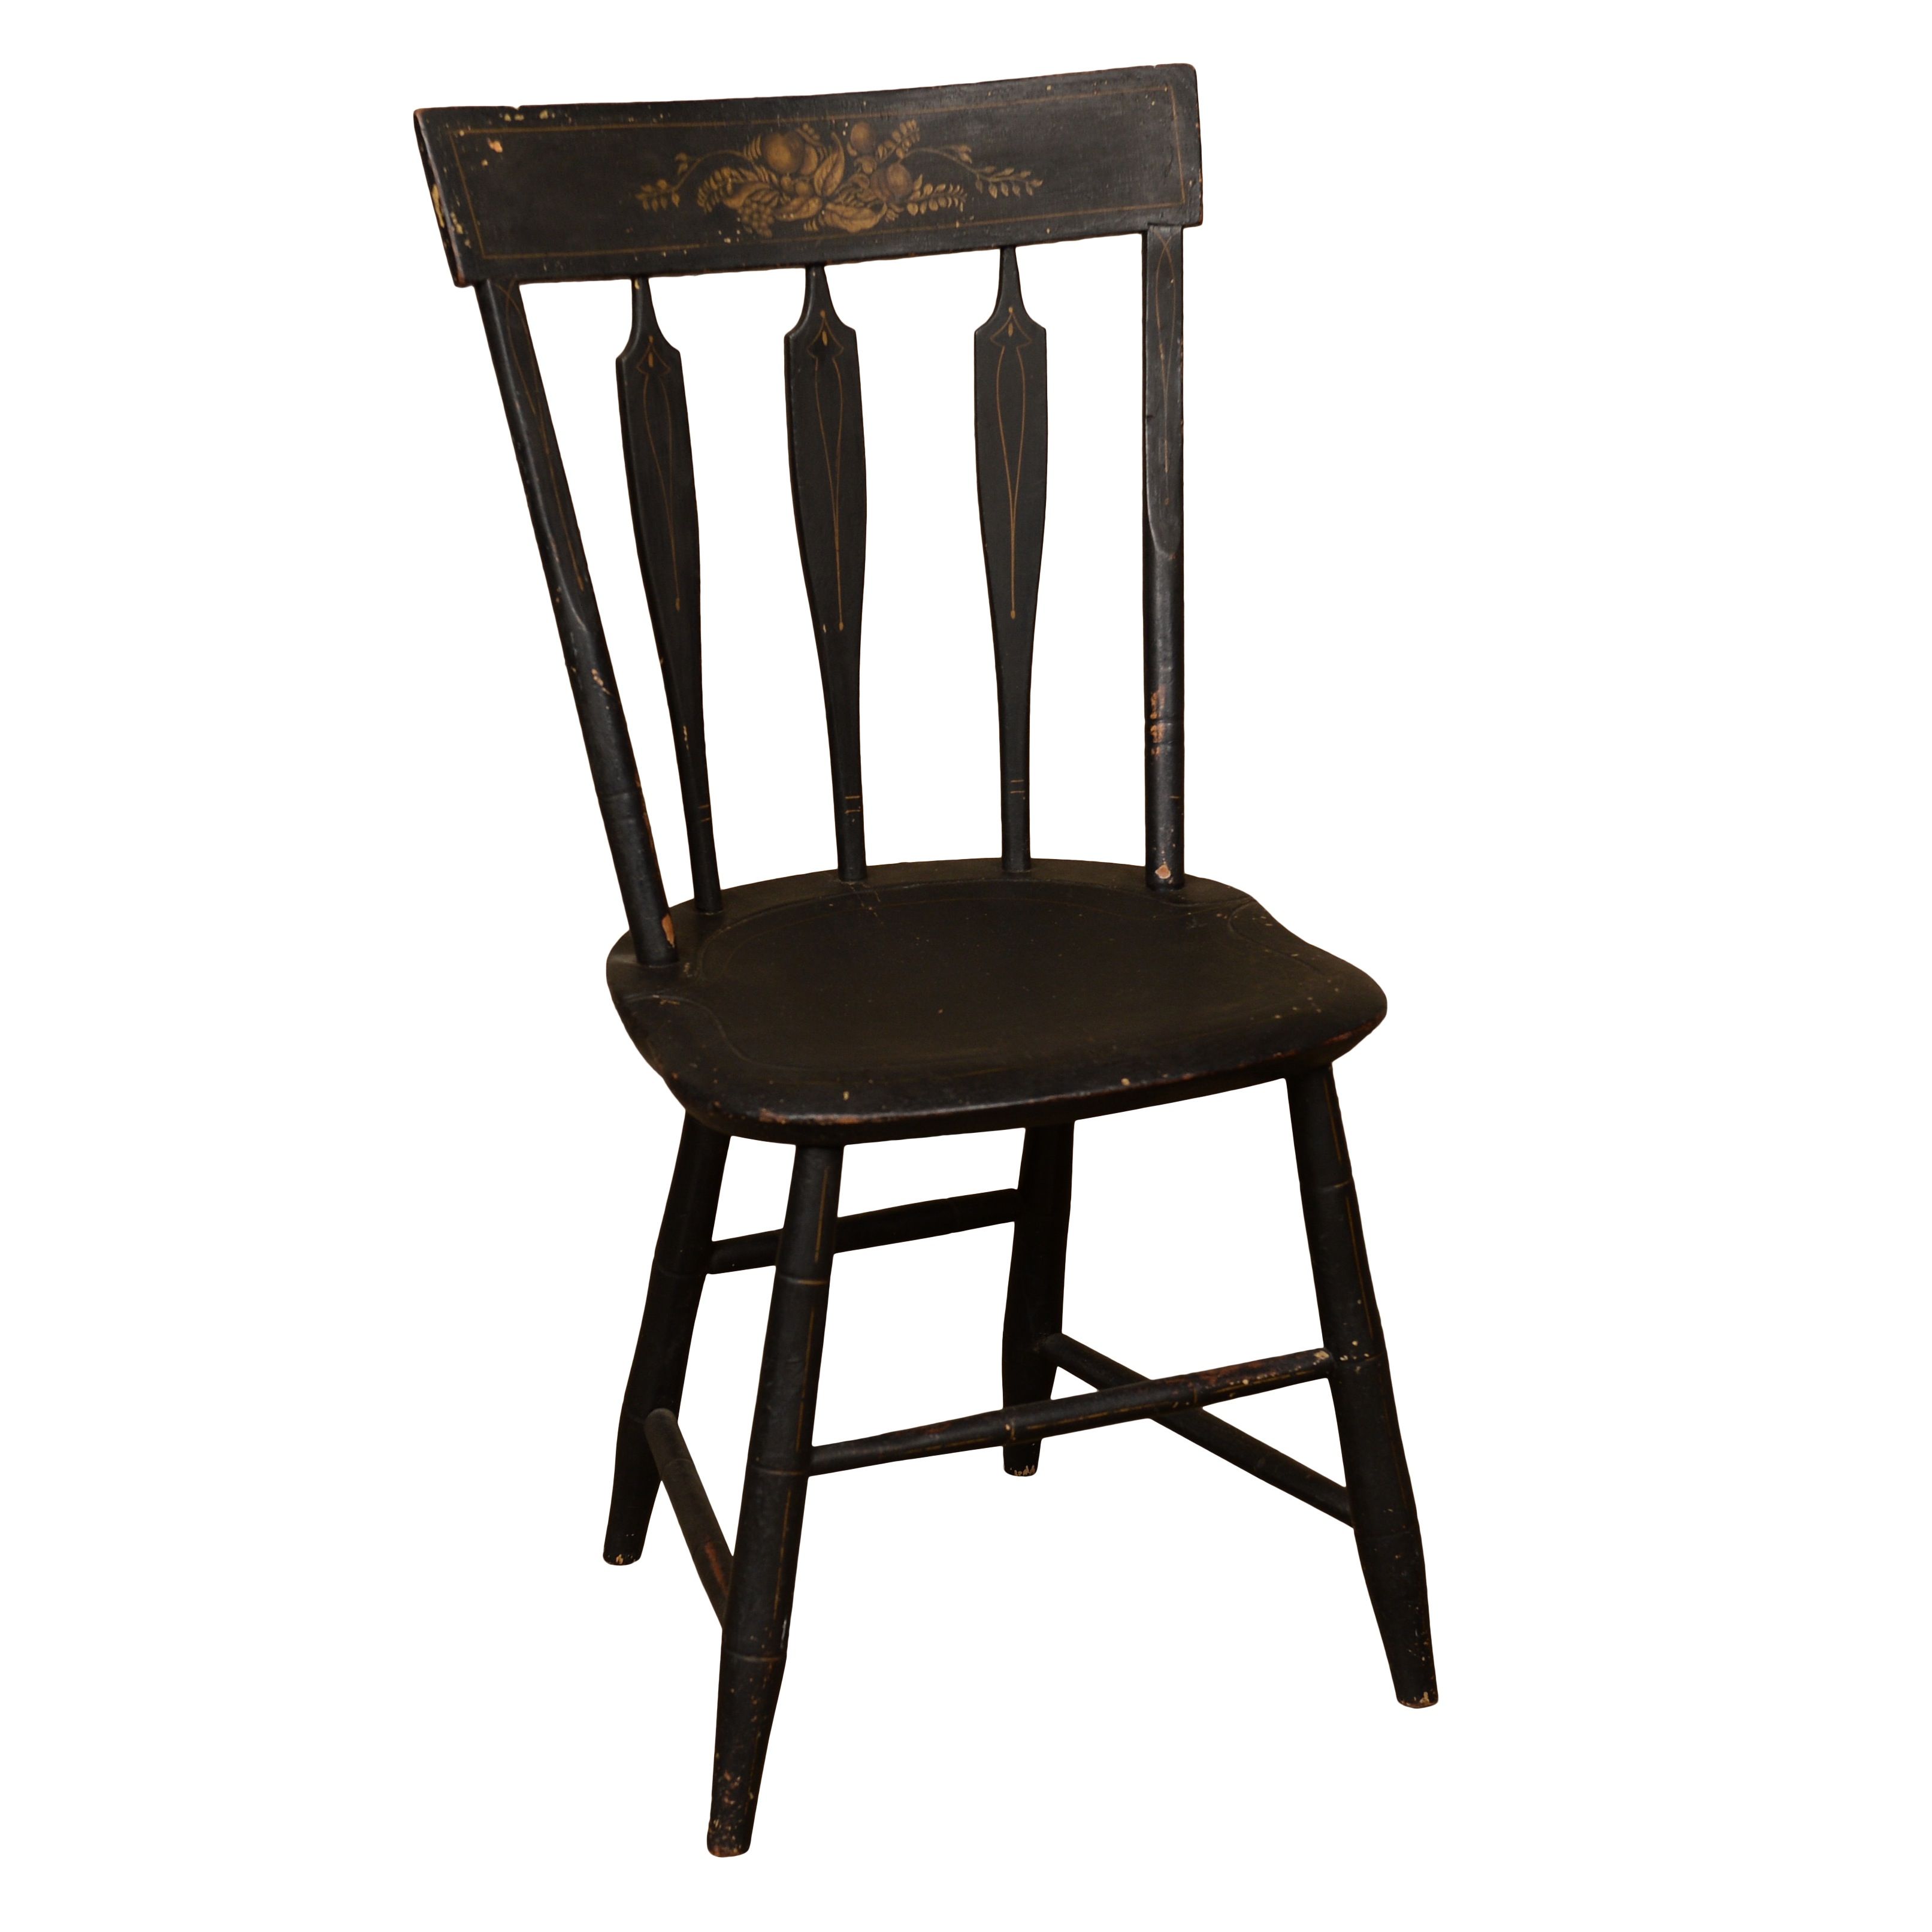 Fiore Black Chairs